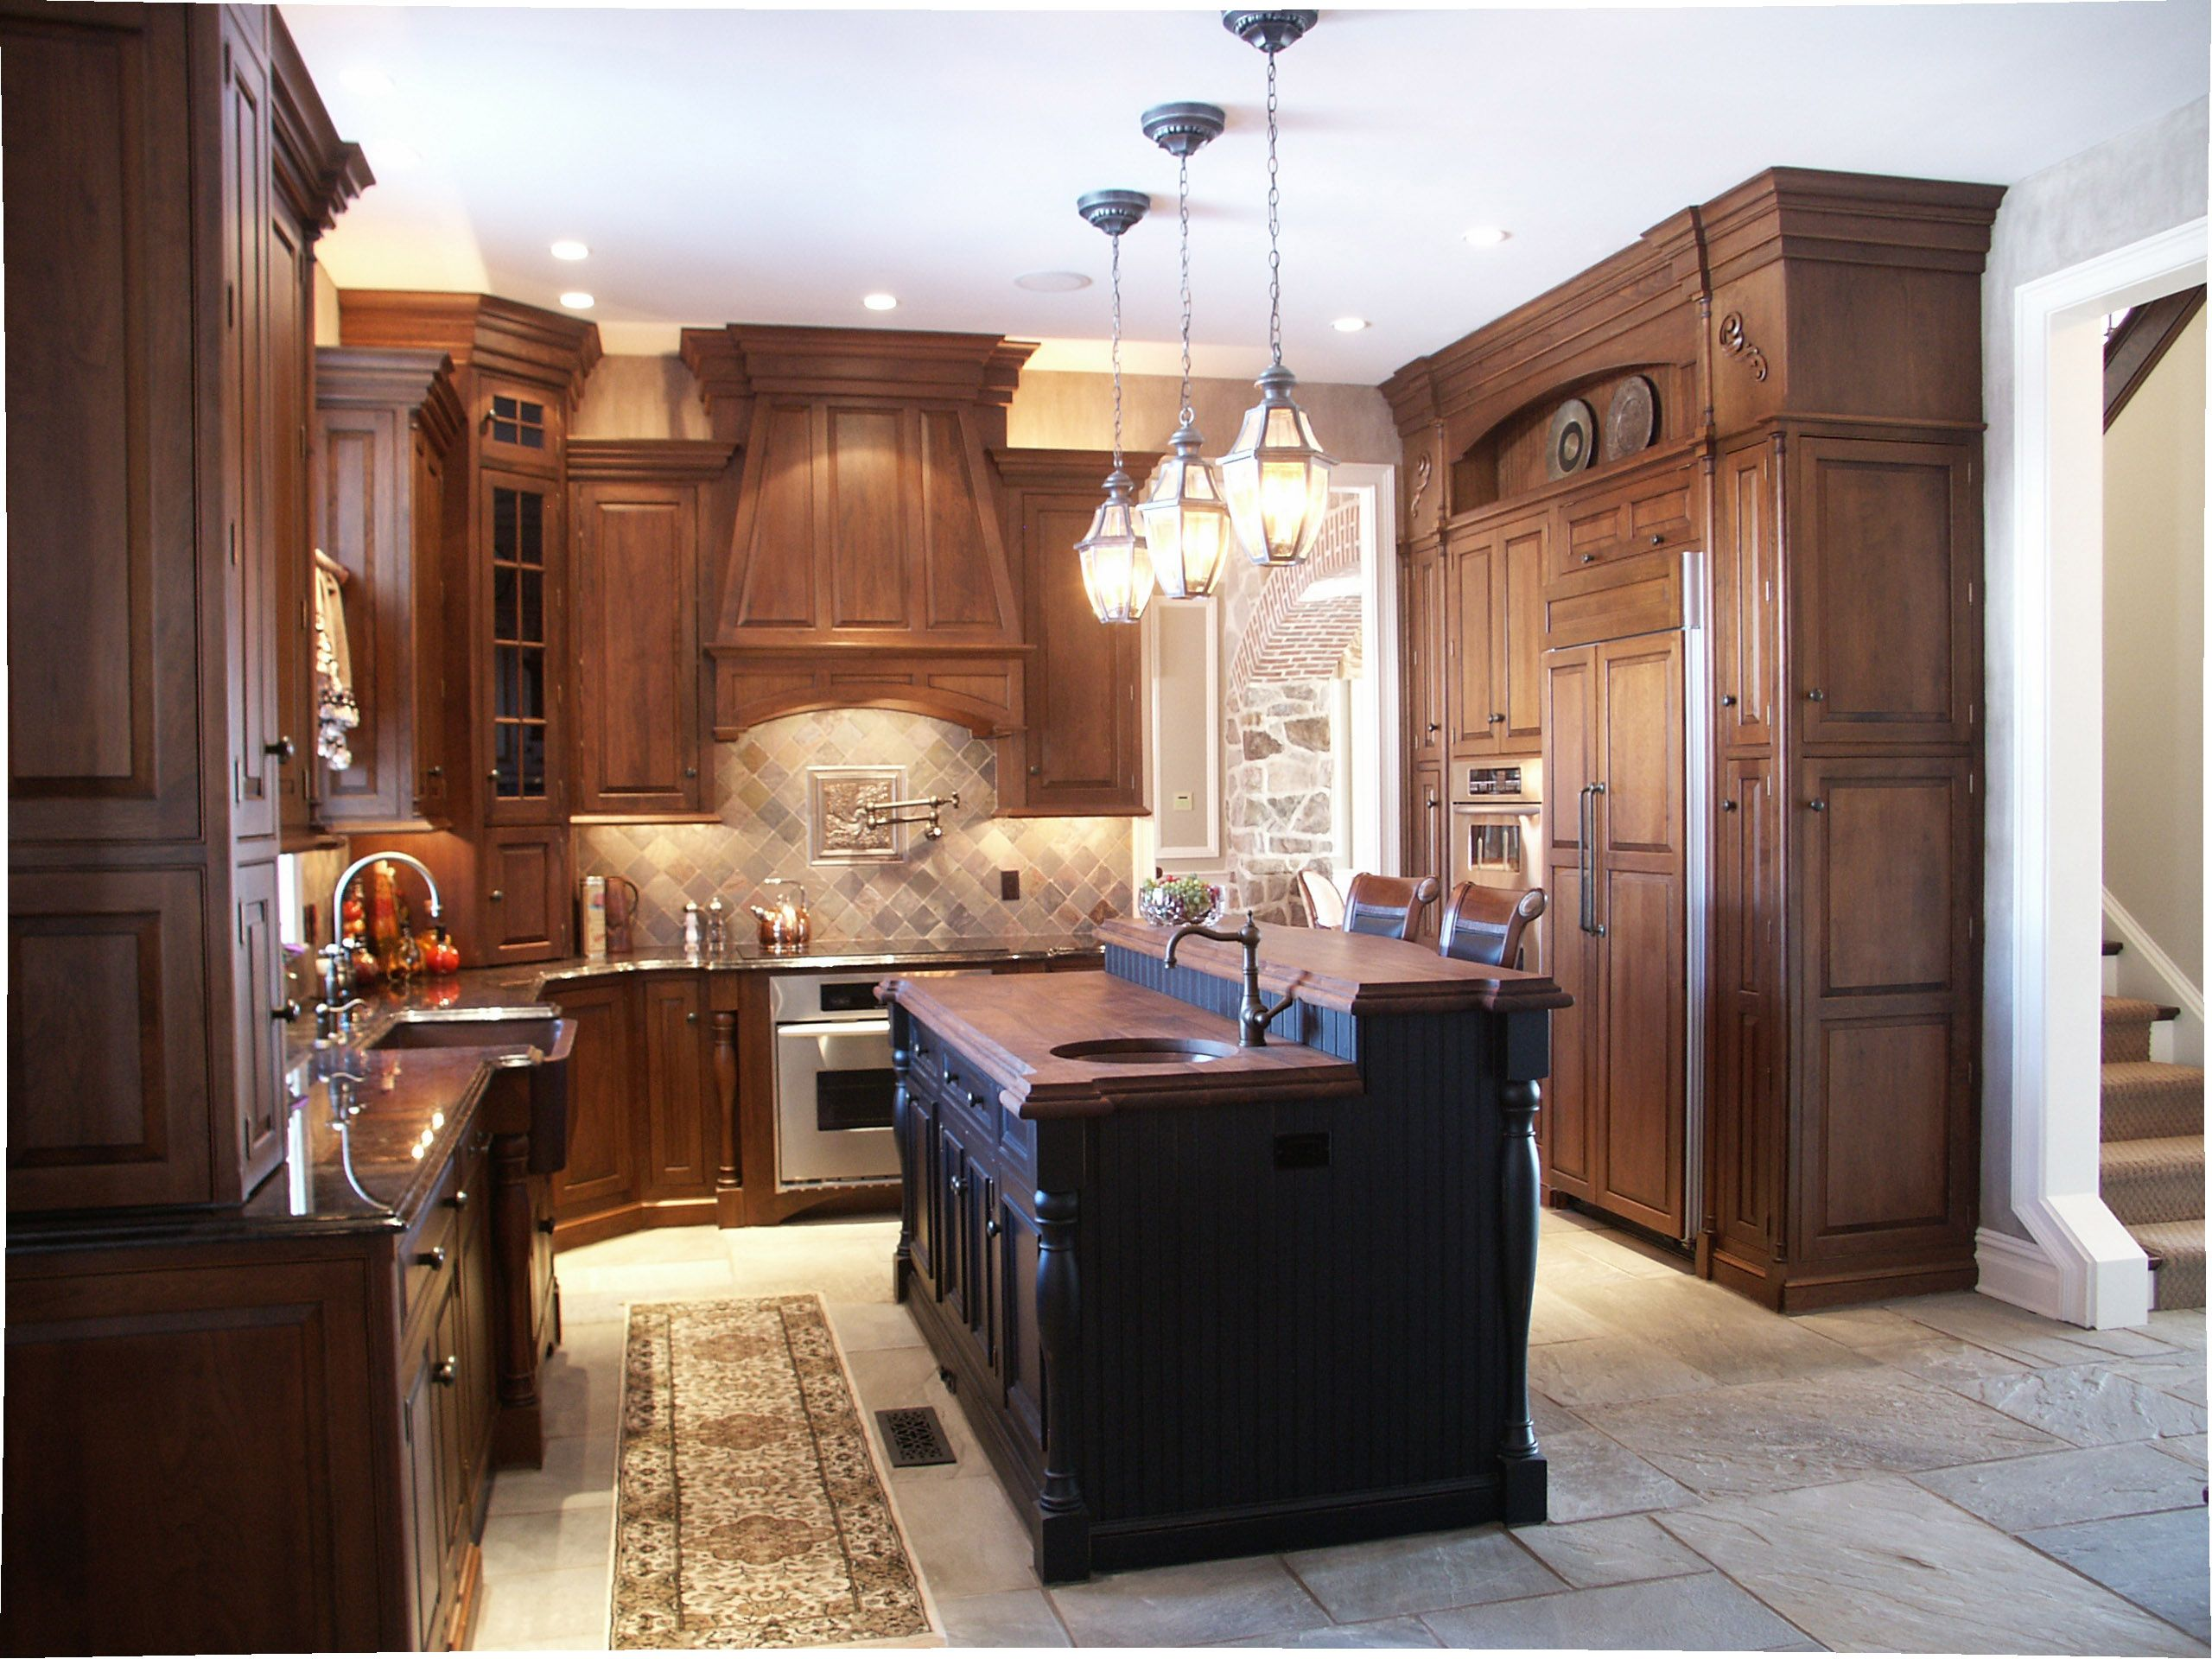 Old World Kitchen includes wall cabinets to the ceiling custom wood